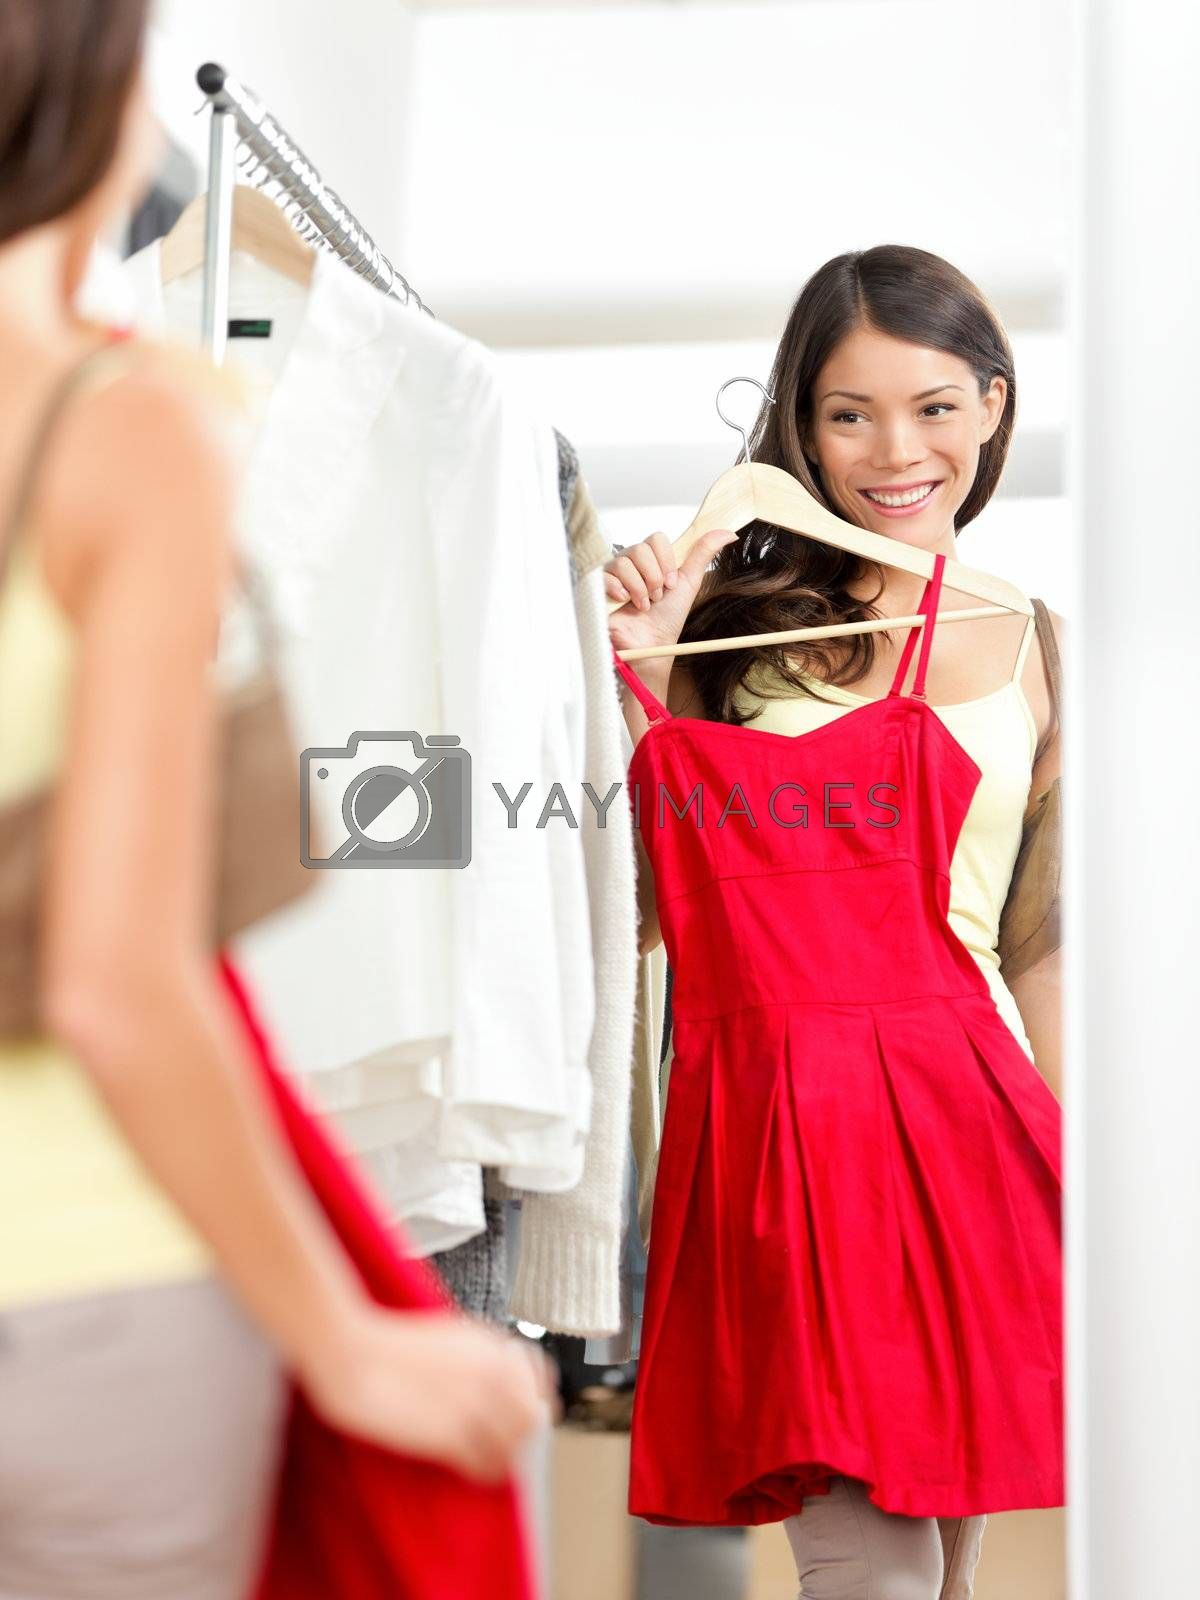 Shopper woman trying clothing dress while shopping in clothes store during sale. Beautiful young multicultural Asian / Caucasian female model smiling happy and joyful.